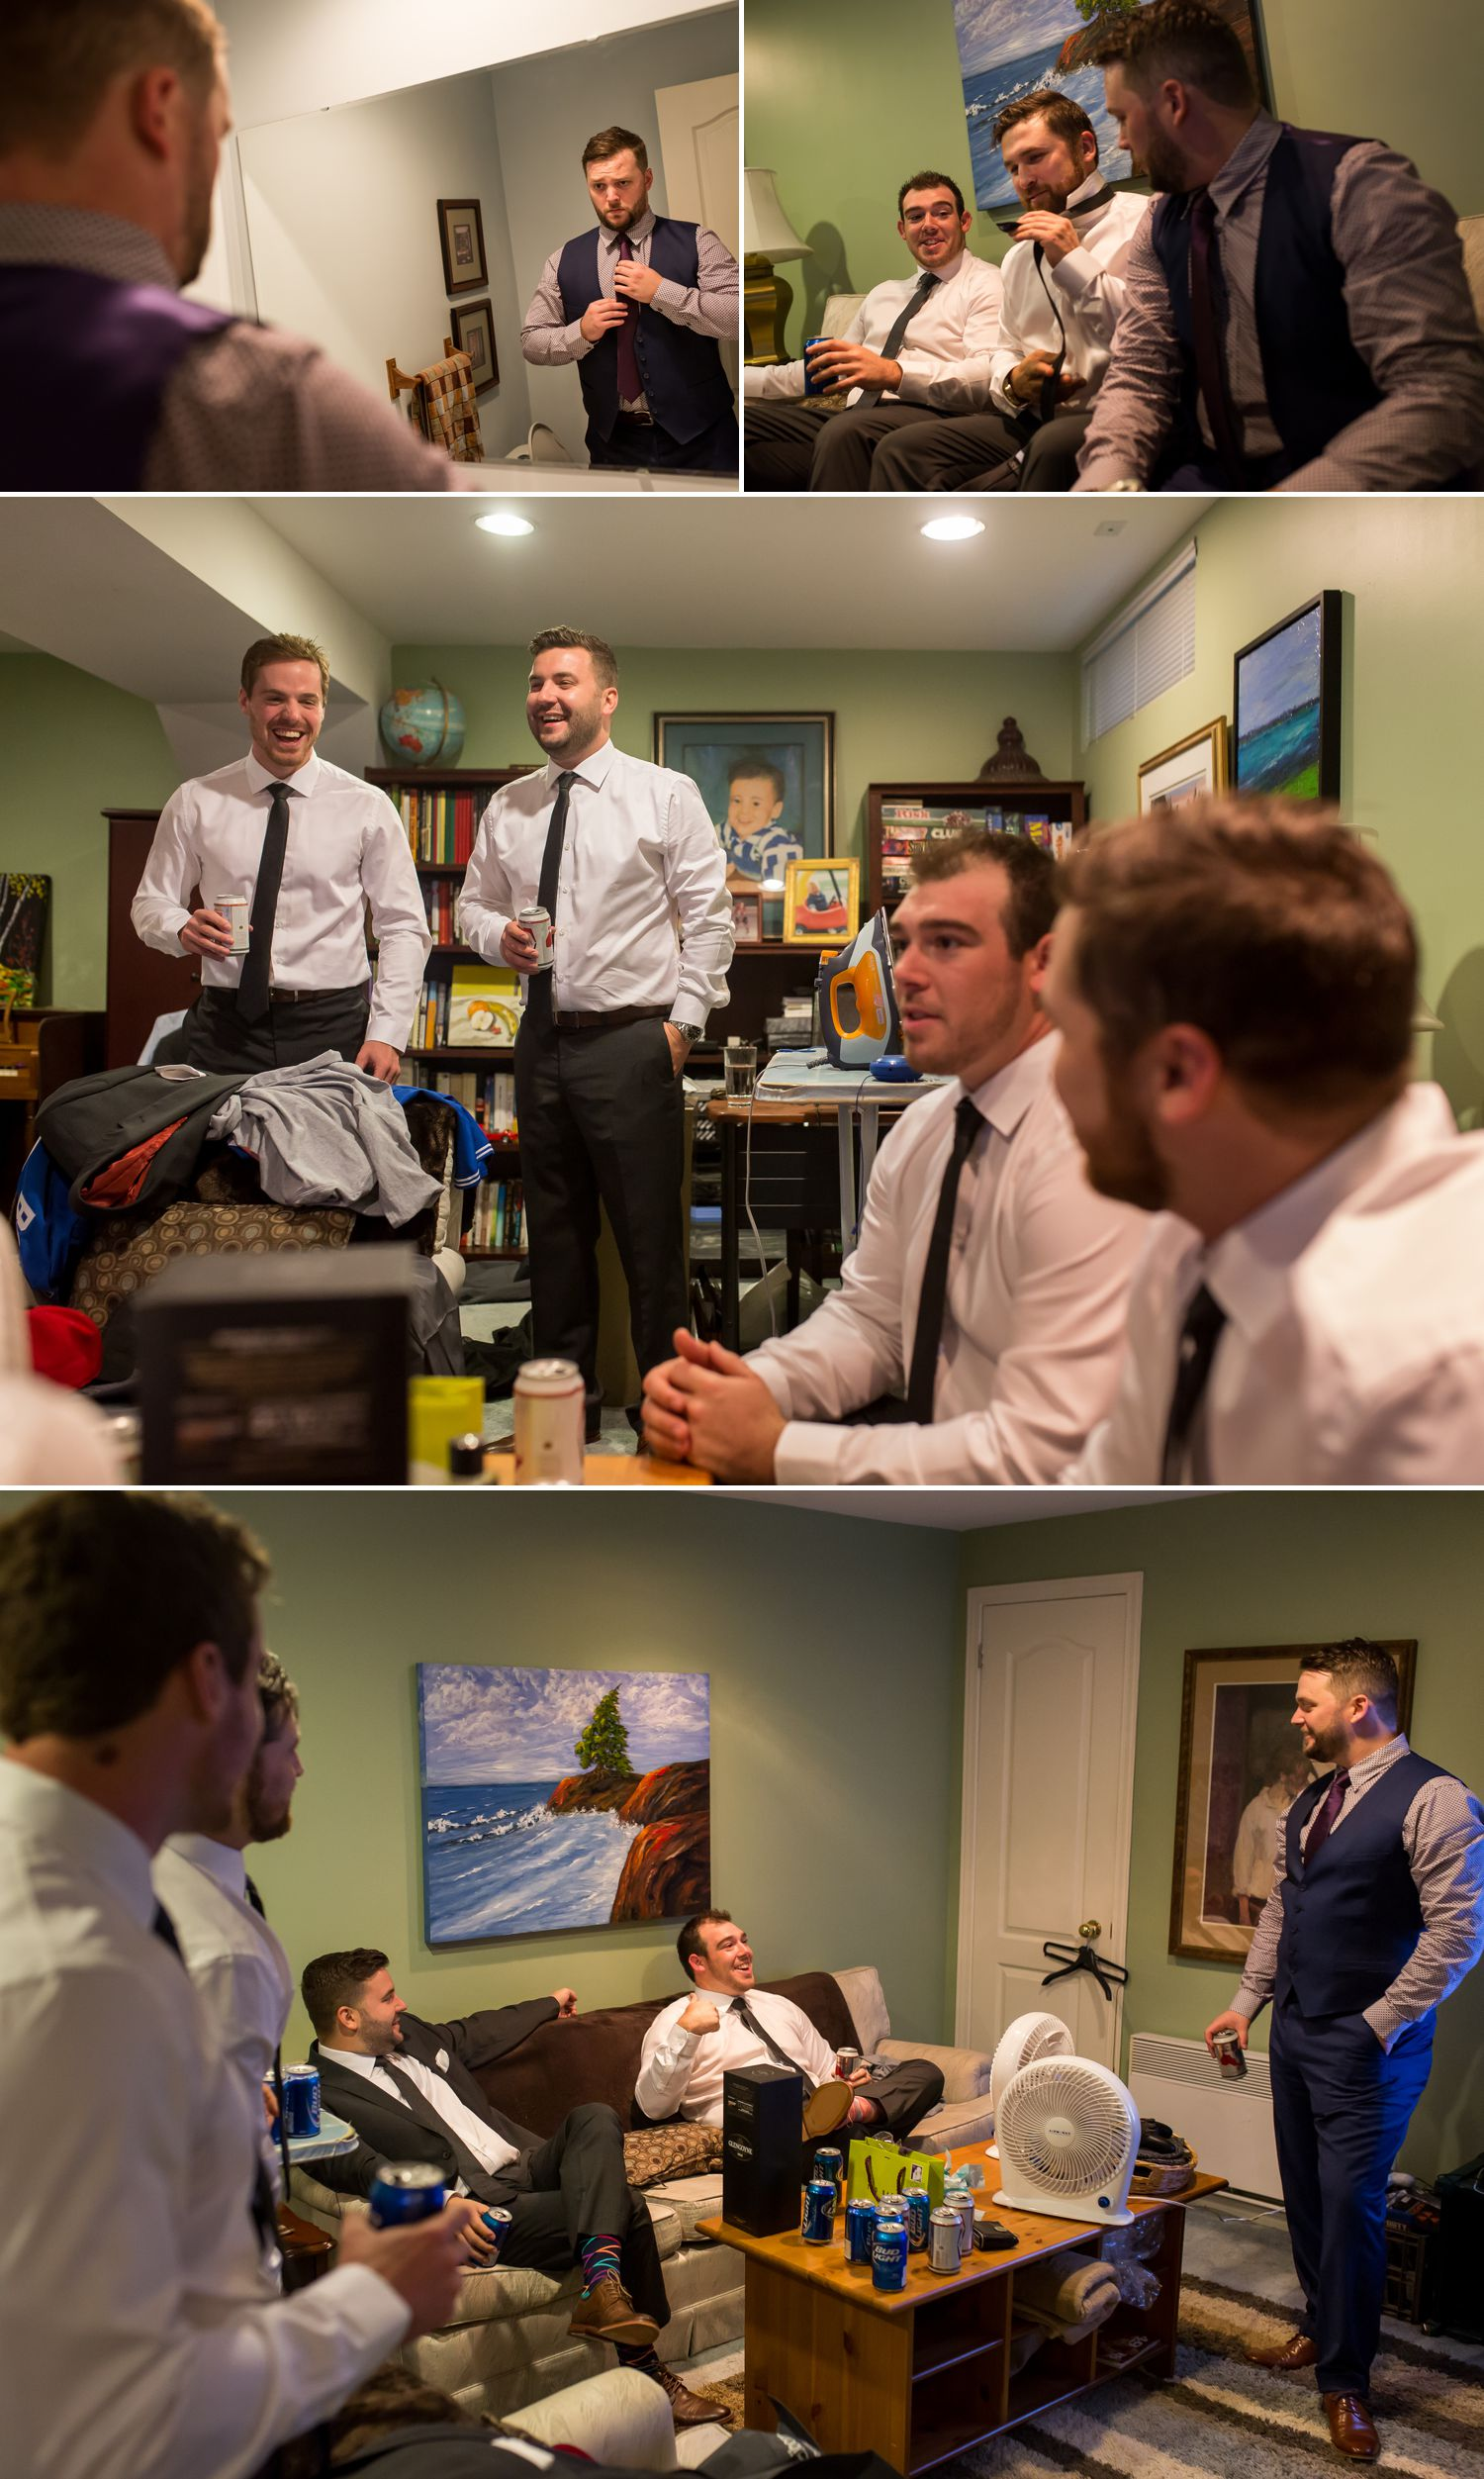 The groom getting ready at home with his groomsmen